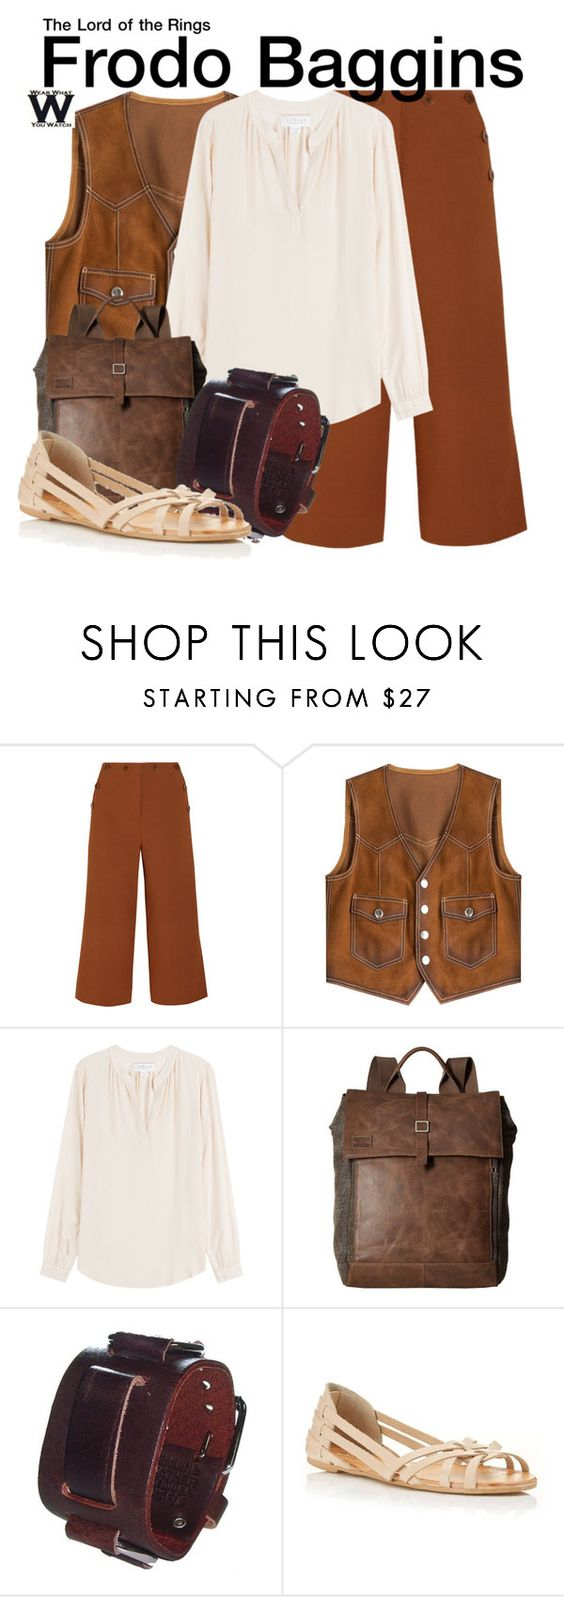 """""""The Lord of the Rings"""" by wearwhatyouwatch ❤ liked on Polyvore featuring TIBI, Dsquared2, Velvet, TOMS, Nemesis, Miss Selfridge, wearwhatyouwatch and film"""